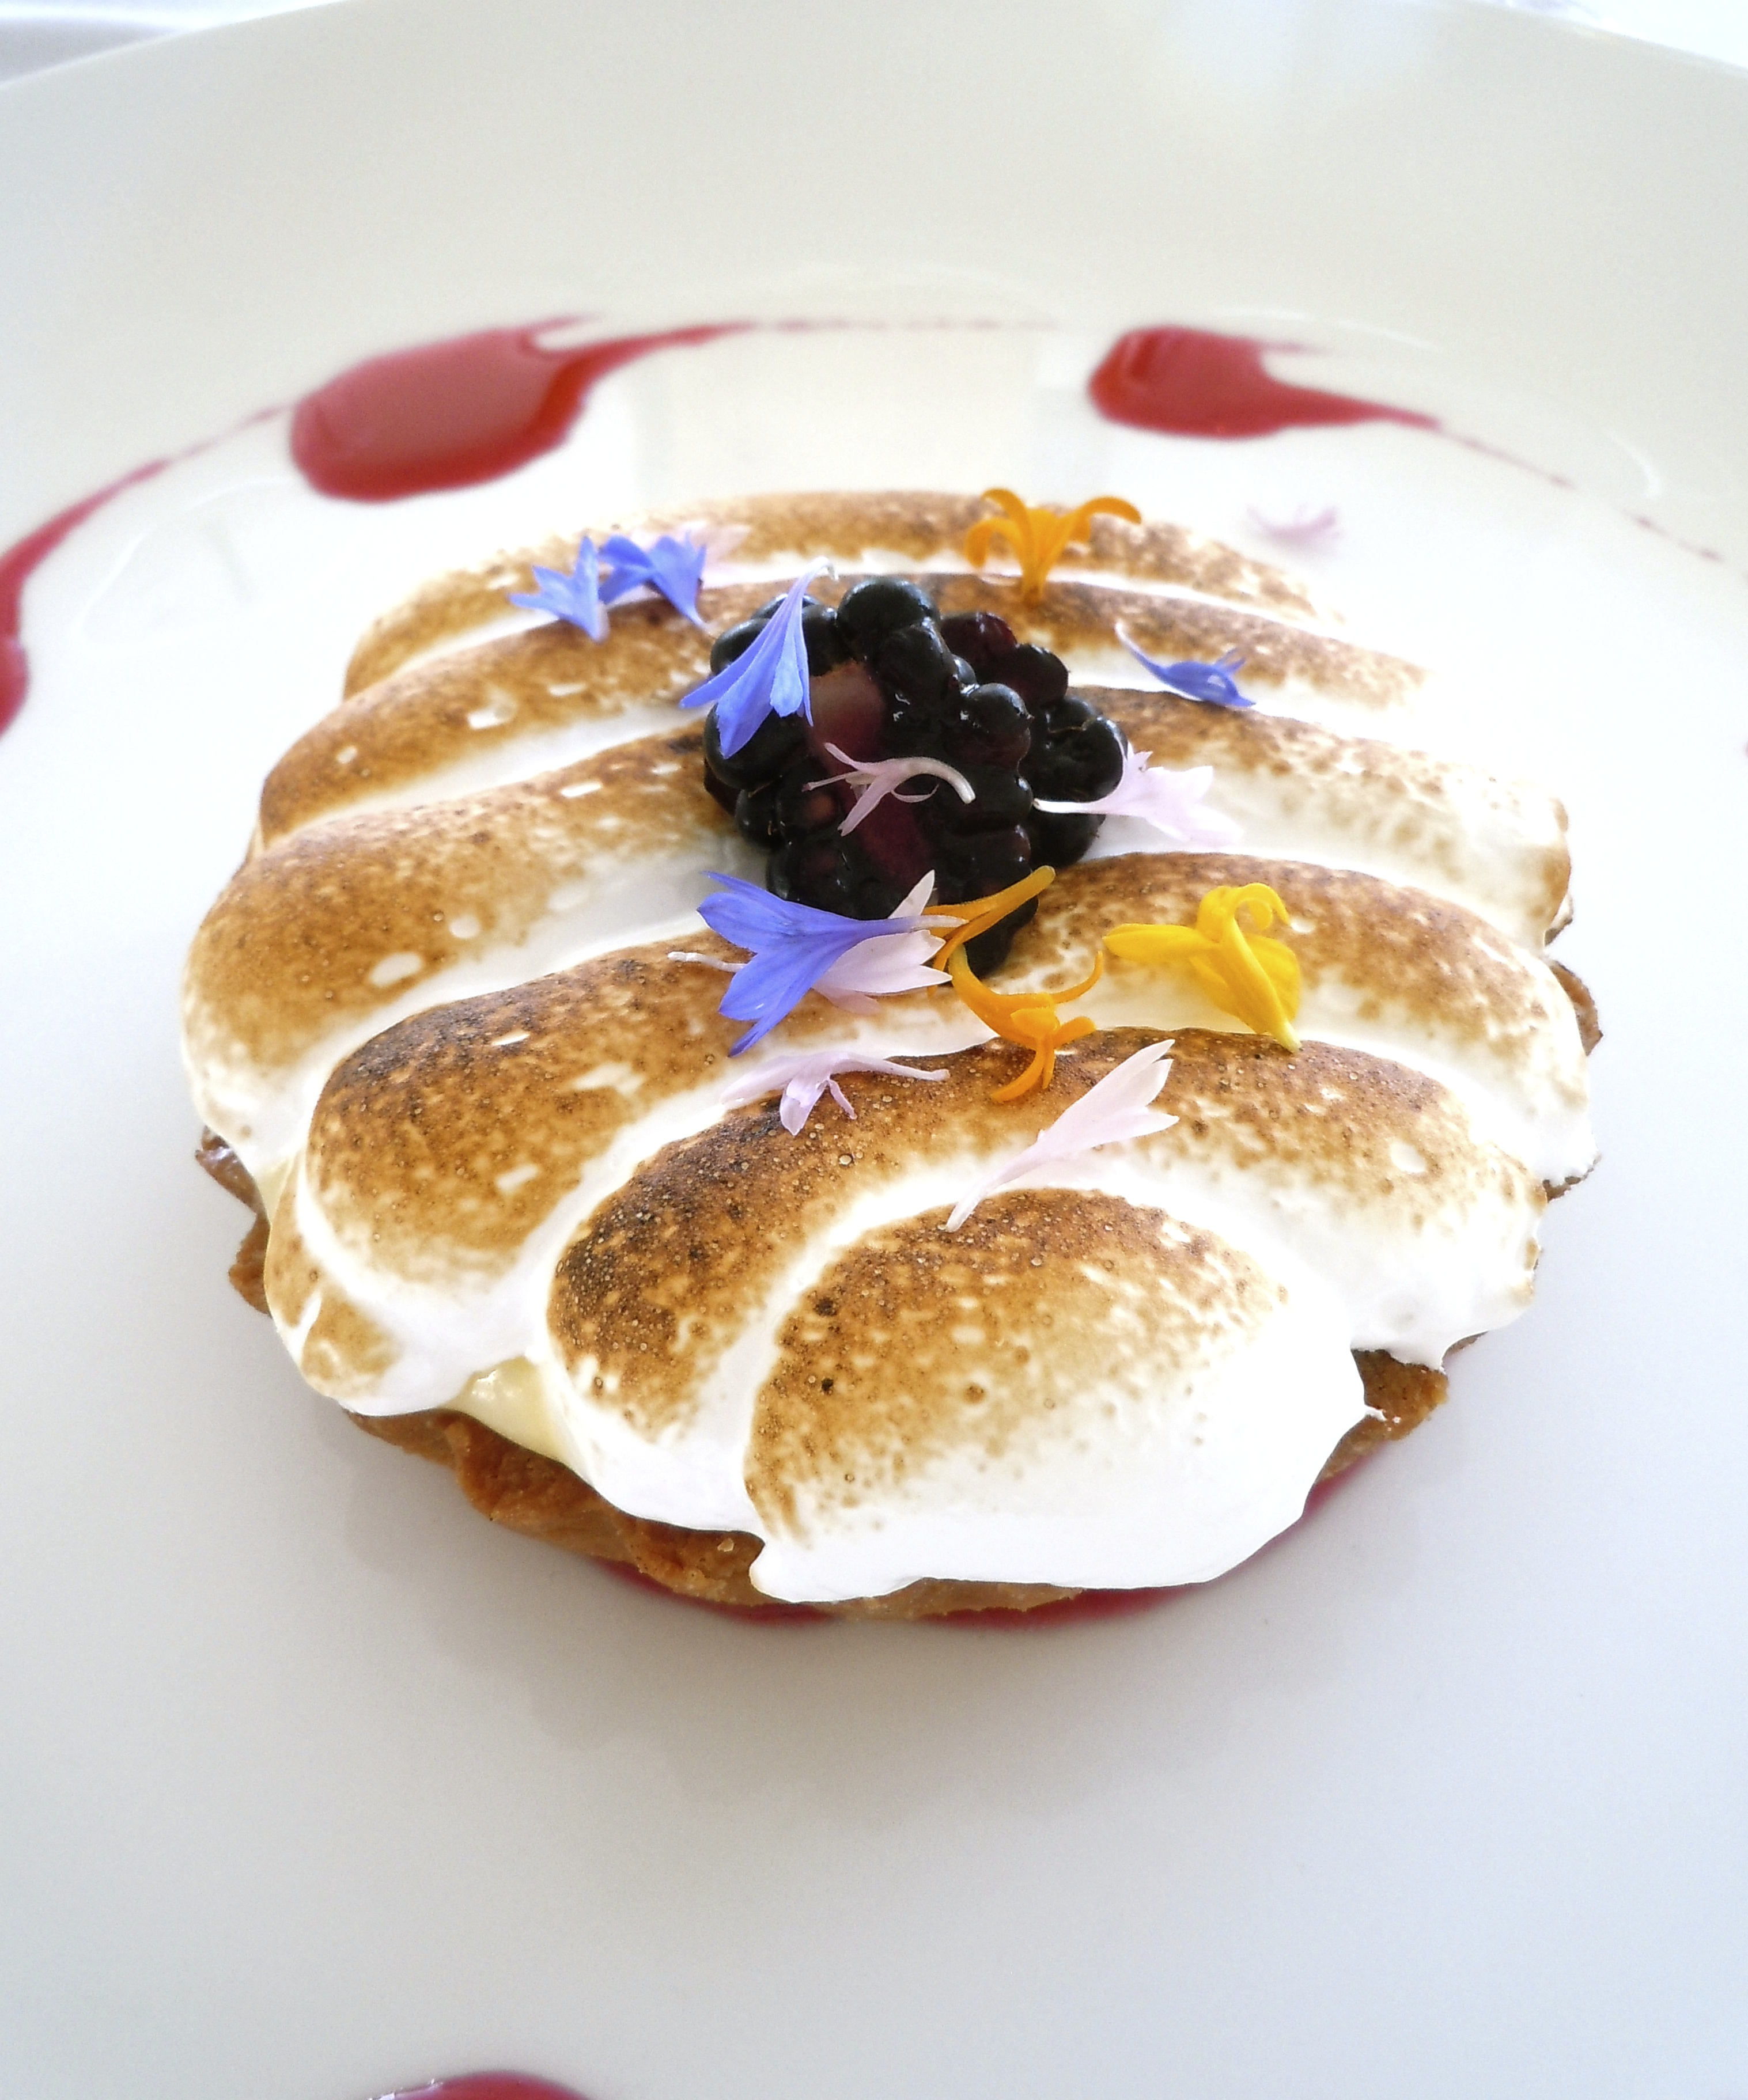 Citrus Tart with Edible Flowers